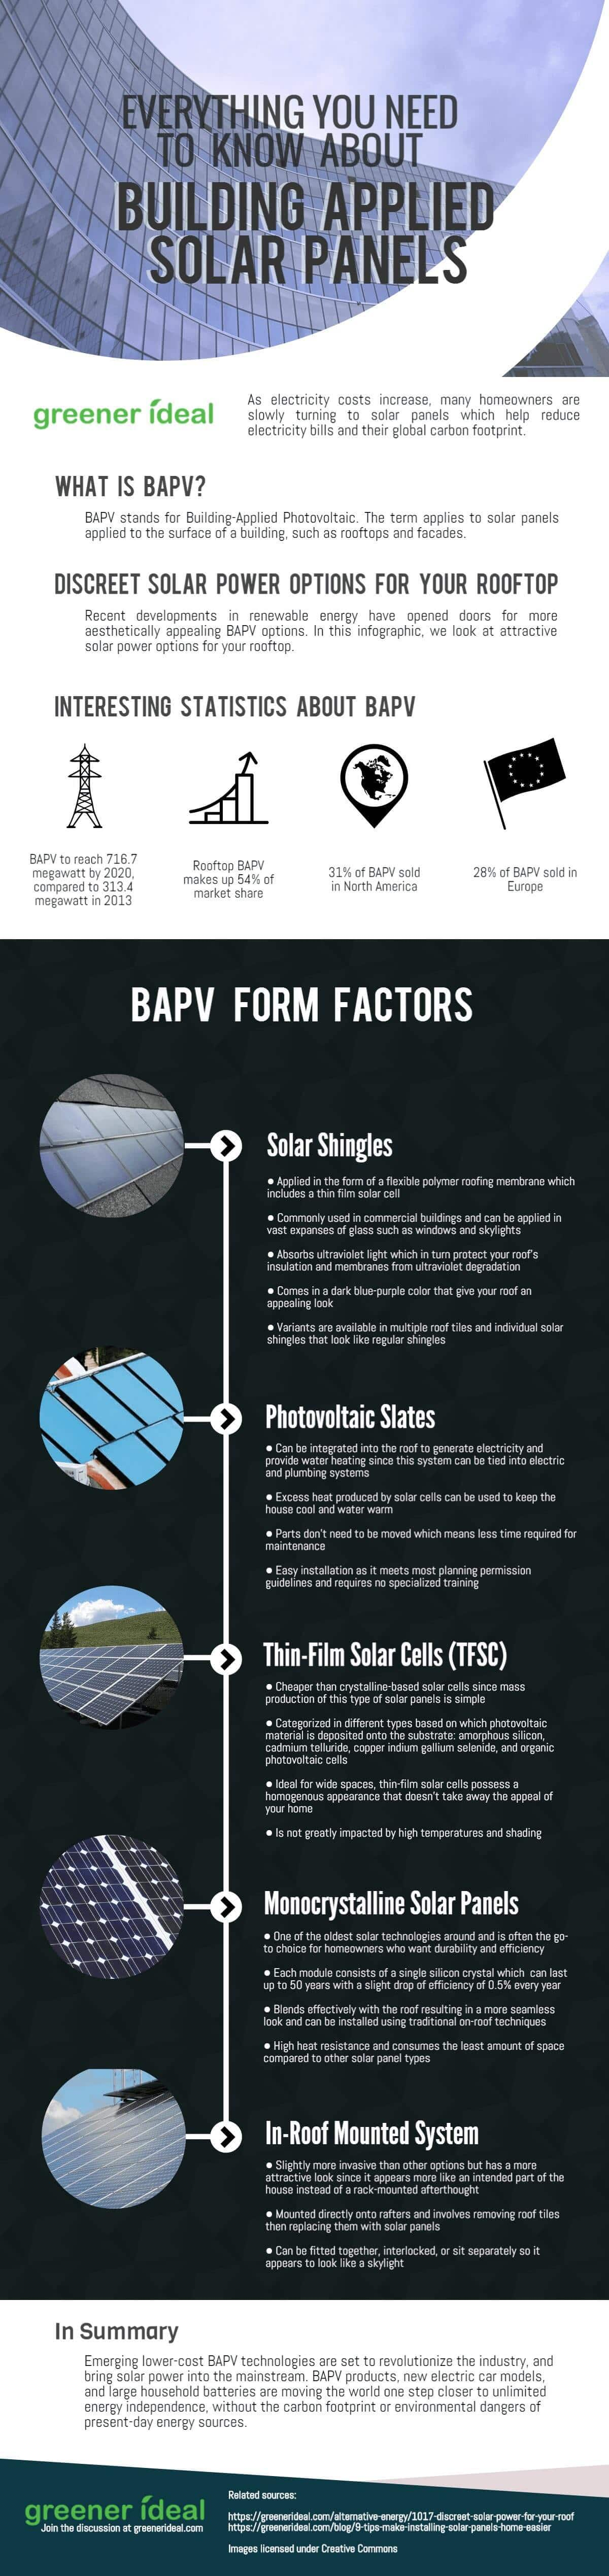 Everything you need to know about building applied solar panels